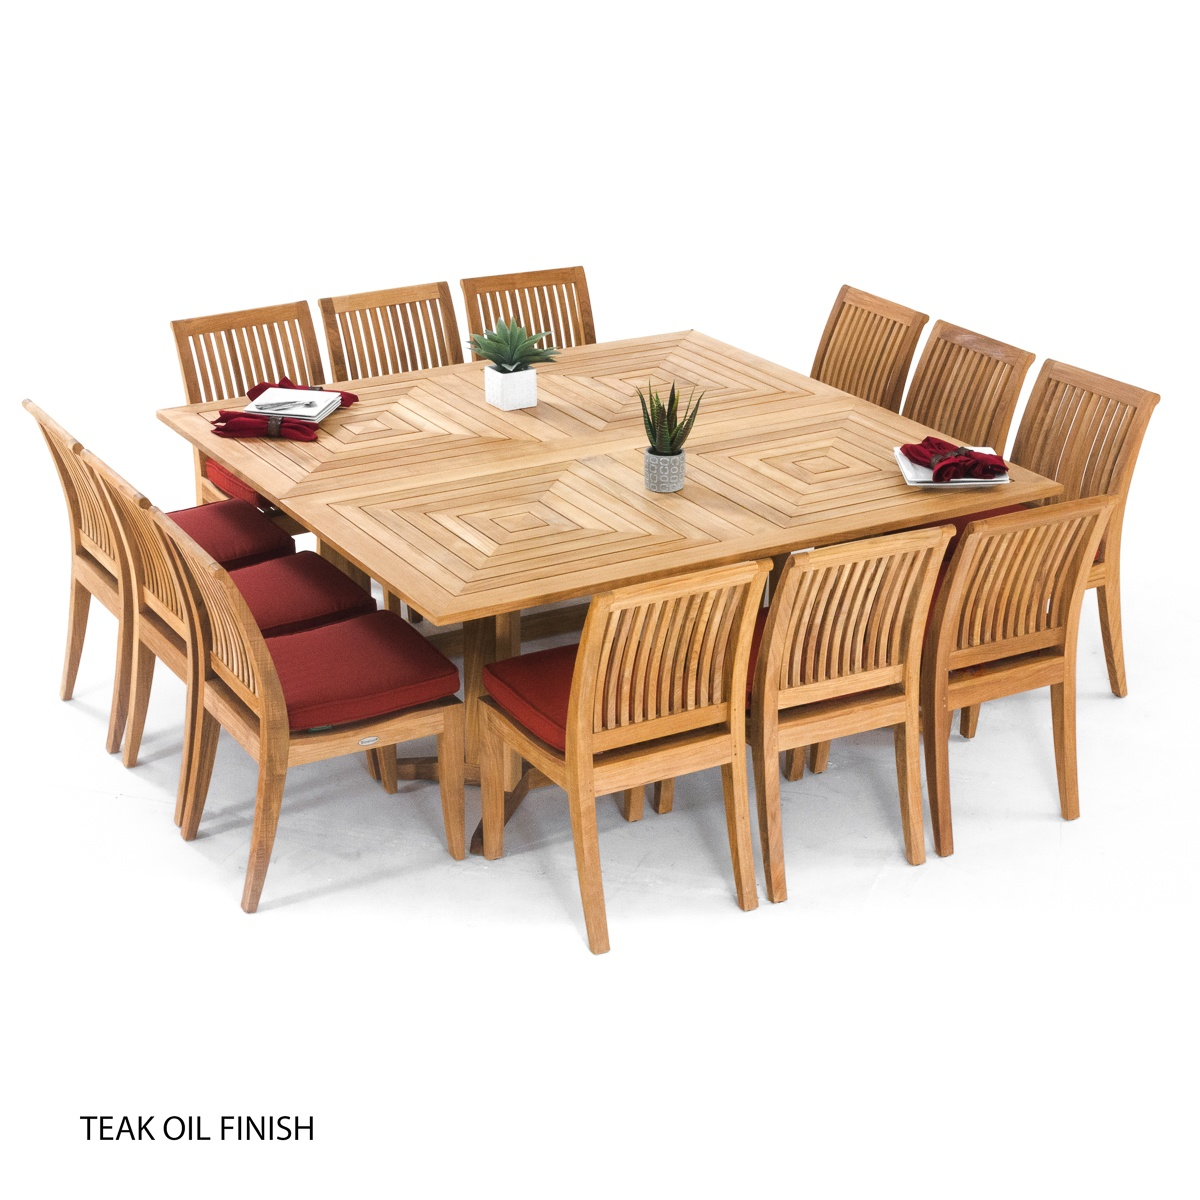 Teak Dining Room Chairs Large Teak Dining Set For 12 People